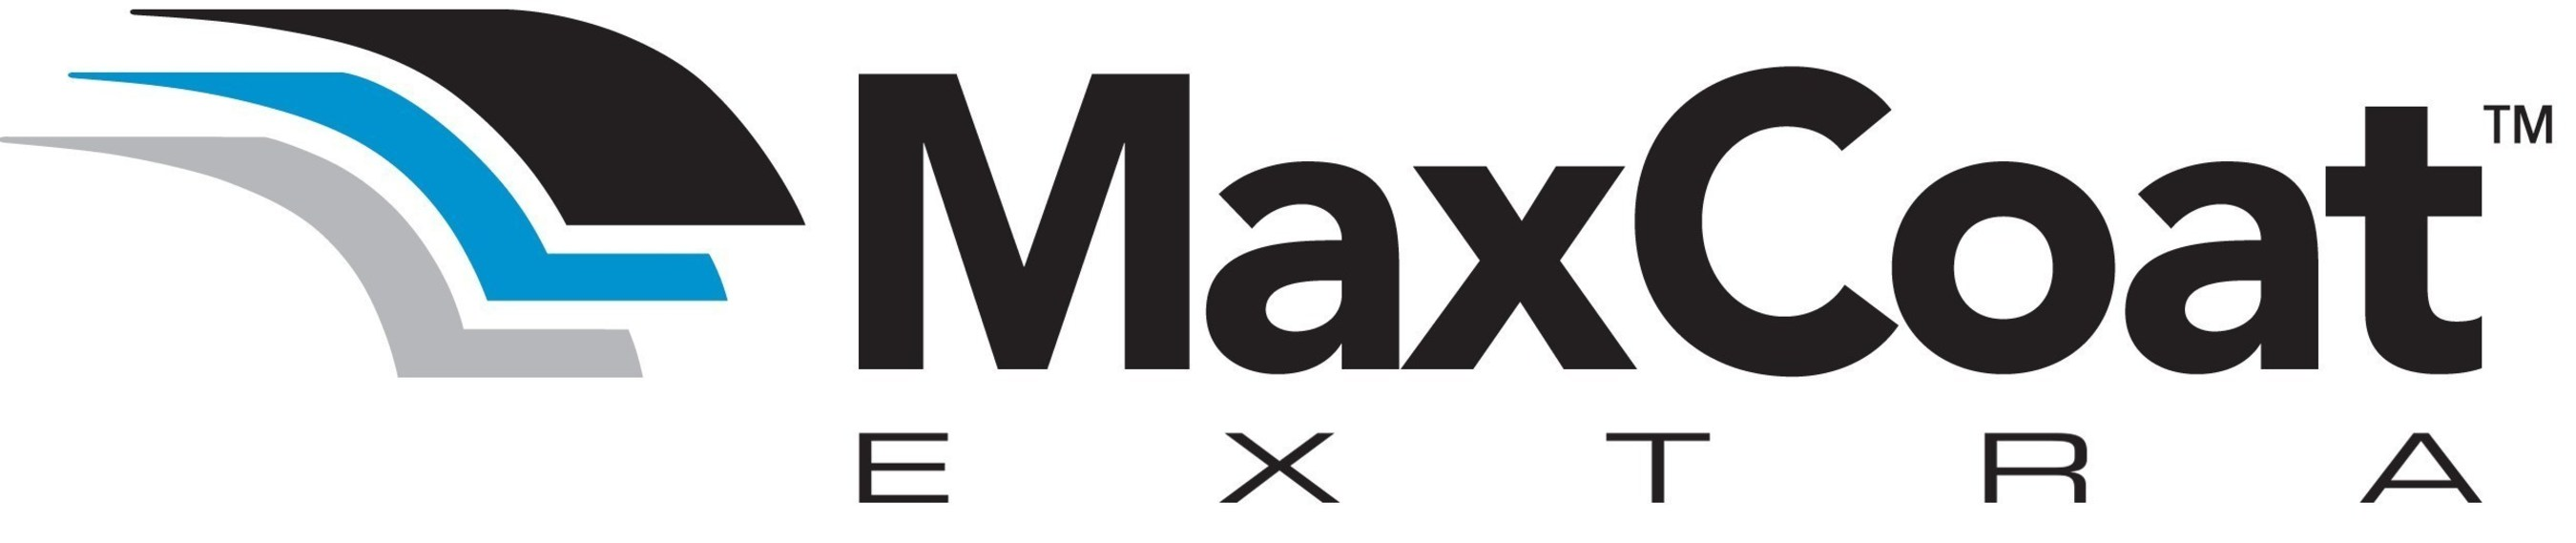 Maxion Wheels MaxCoat(TM) Extra Finish Warranty introduced to the North American commercial vehicle market on July 1, 2016. This is the industry's first standard finish warranty for steel wheels.